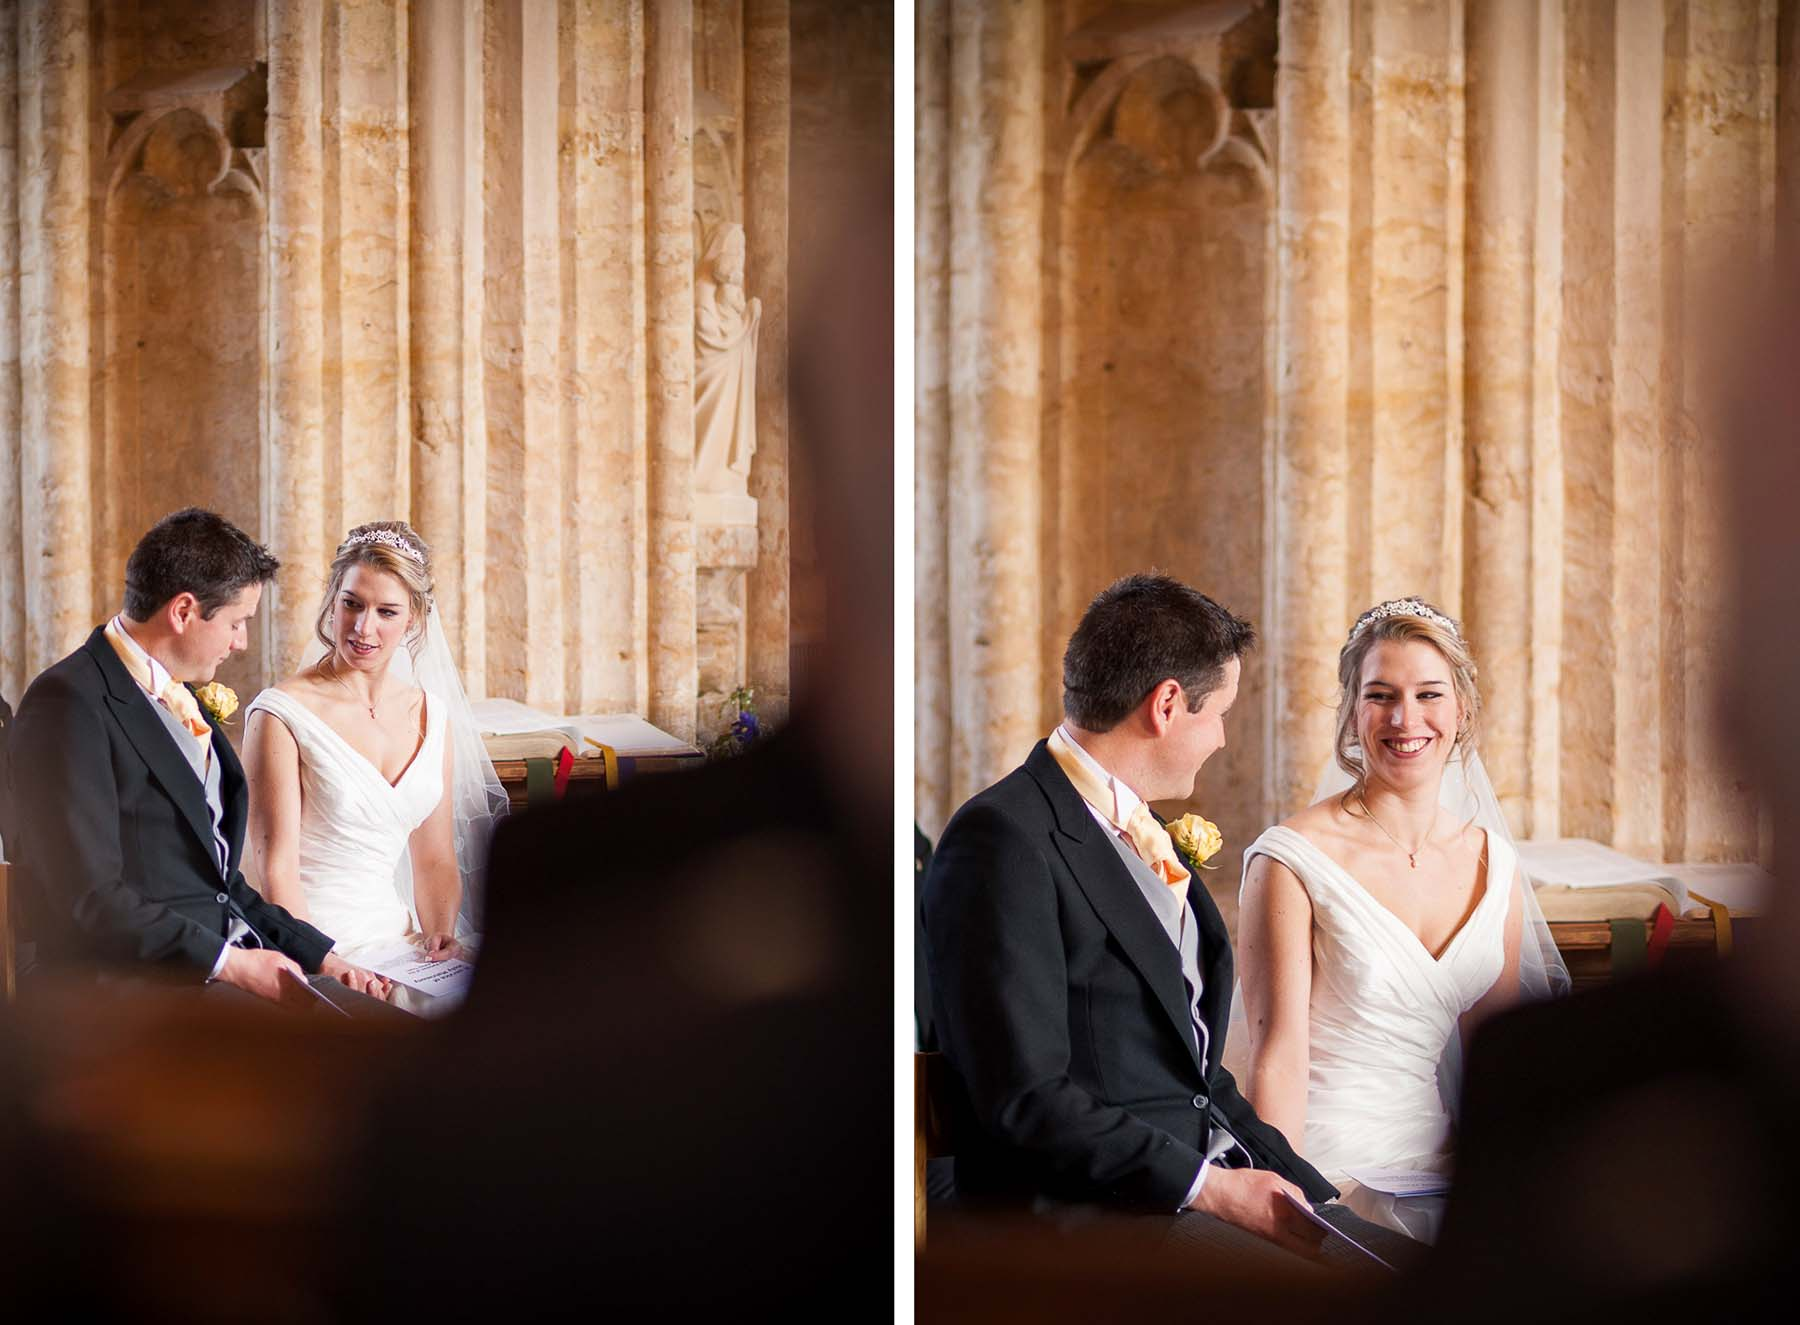 jo-dorset-wedding-church-happy-ceremony-15